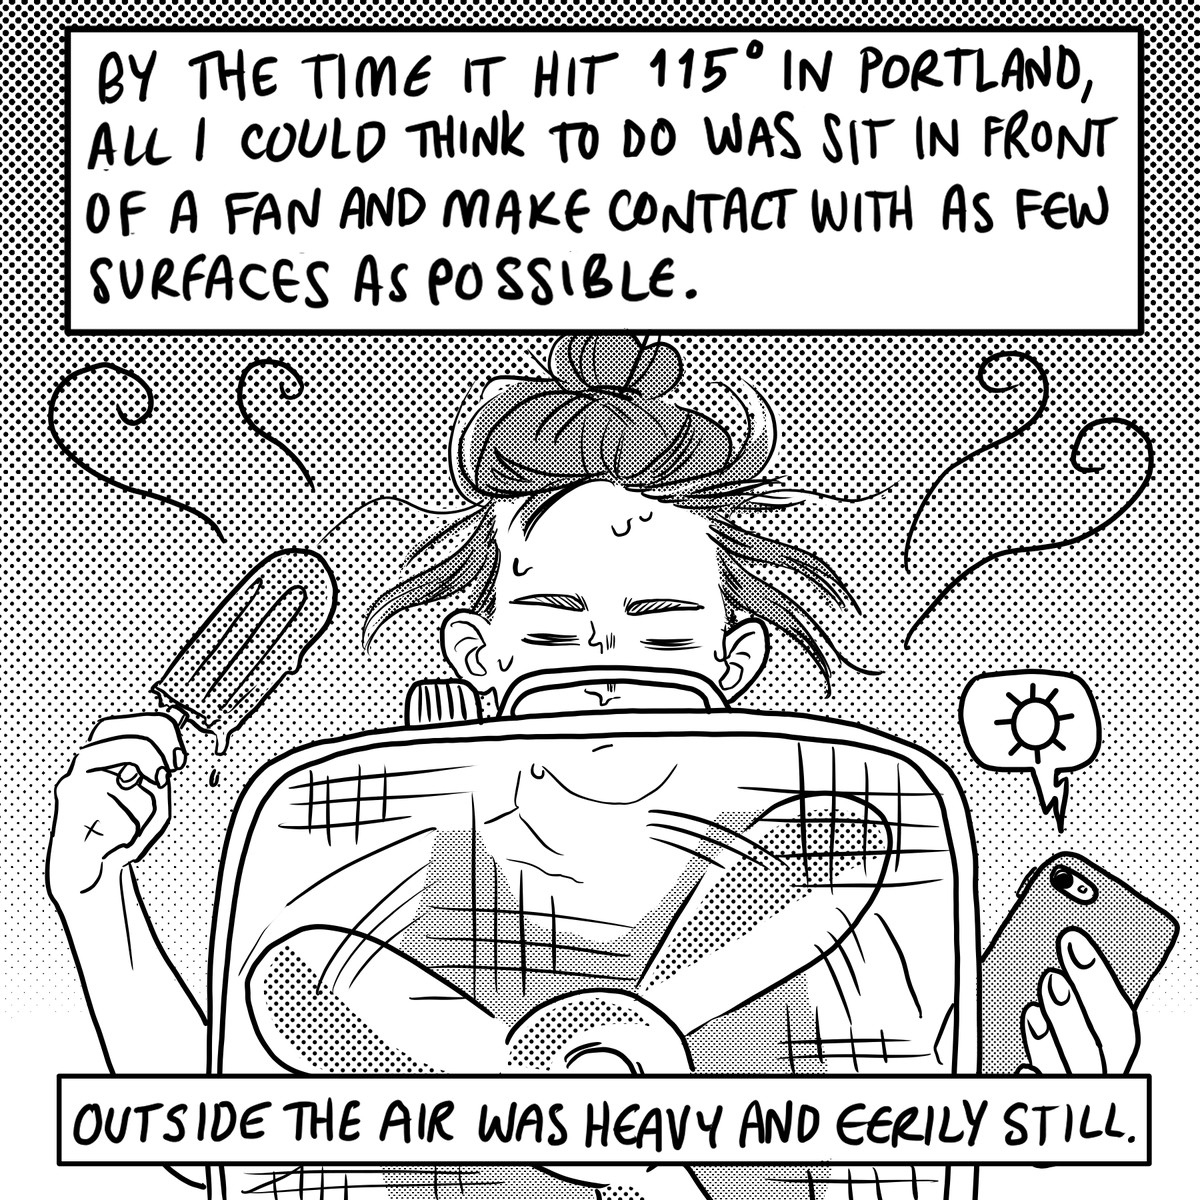 """A six panel black and white comic. Panel 1. A person with their hair in a bun sits in front of a square box fan and holds a popsicle in one hand and a smartphone in the other. There is a word balloon with a sun symbol above the phone. Text: """"Bythe time it hit 115 degrees in Portland on Monday all I could think to do was sit in front of a fan and try to make contact with as few surfaces as possible. Outside the air was heavy and eerily still."""""""